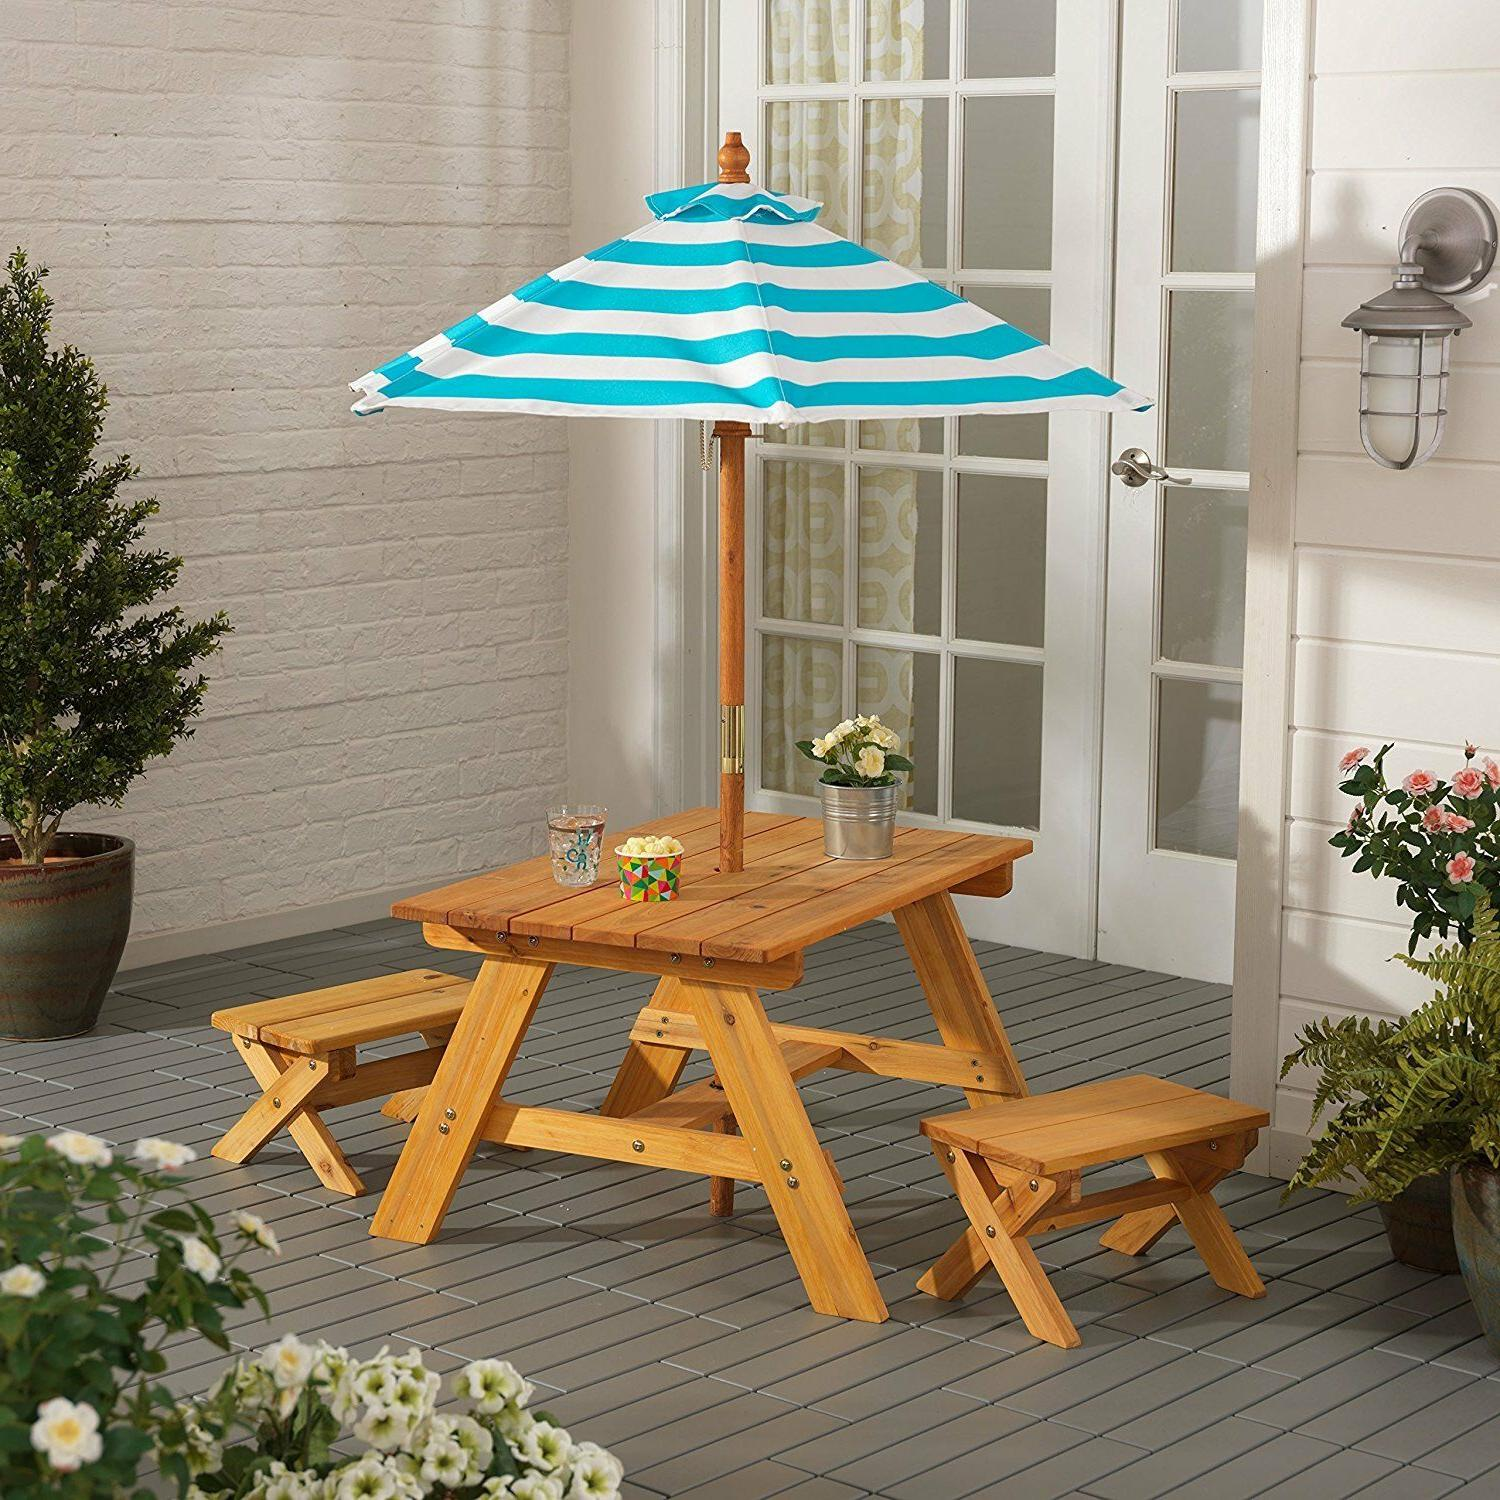 Outdoor Furniture 4Pc Kids Picnic Patio Dining Set with Umbr